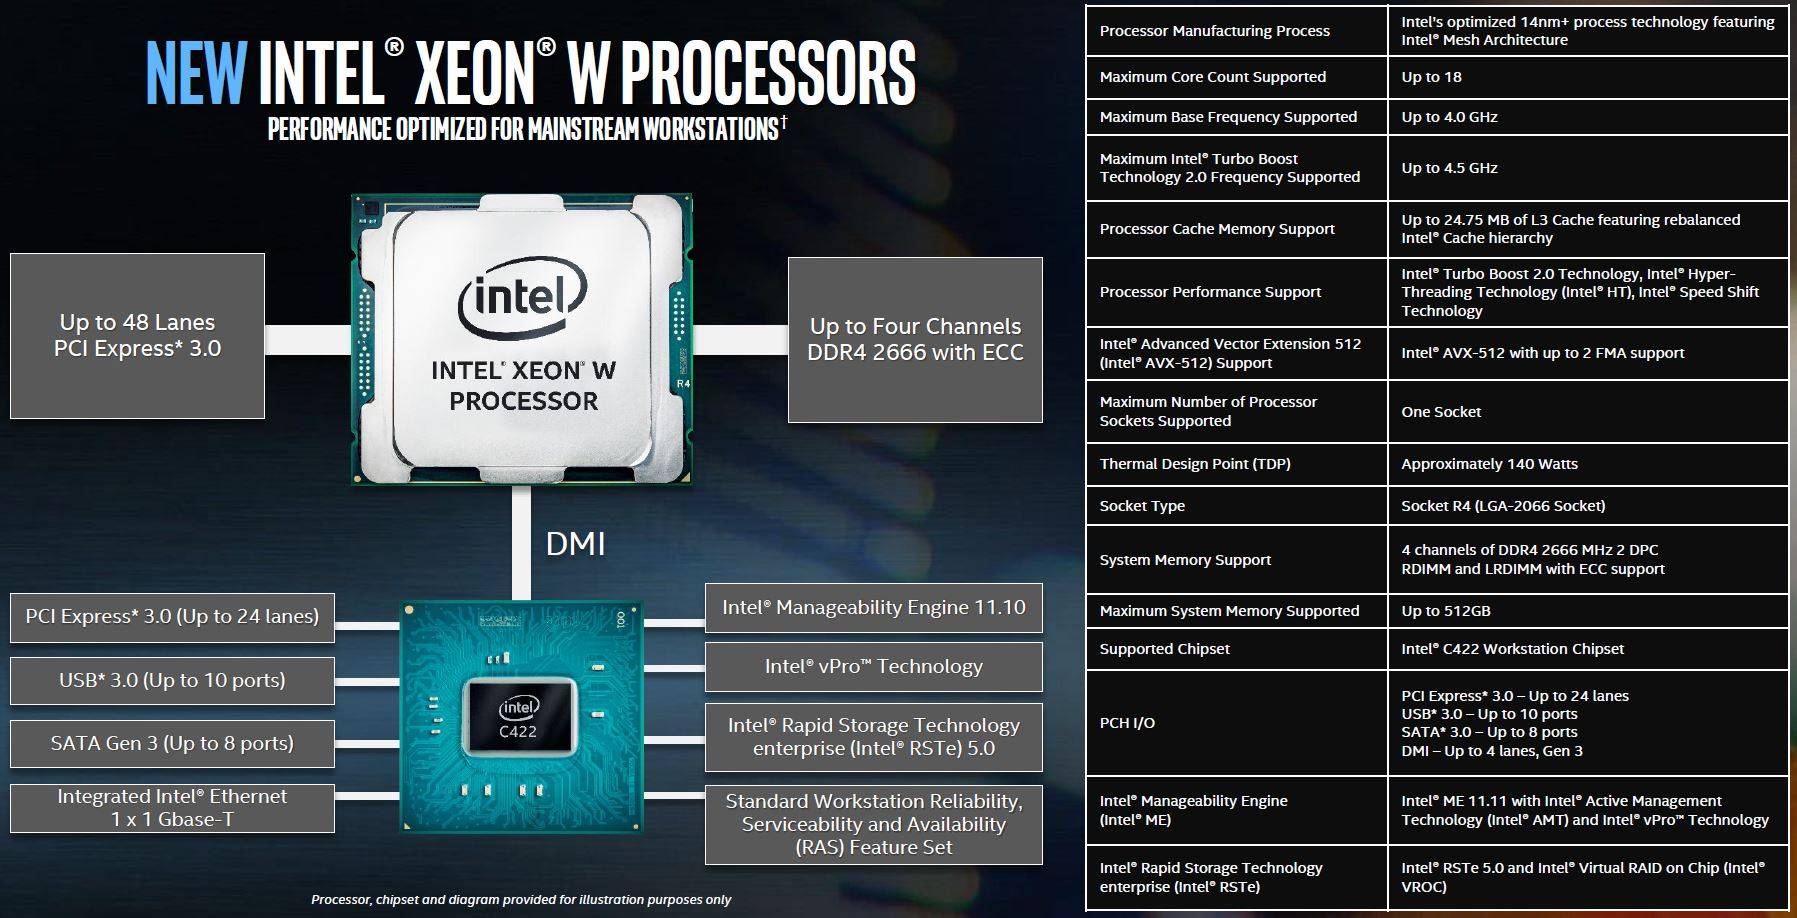 New Intel Xeon W Processors for Professional Workstations